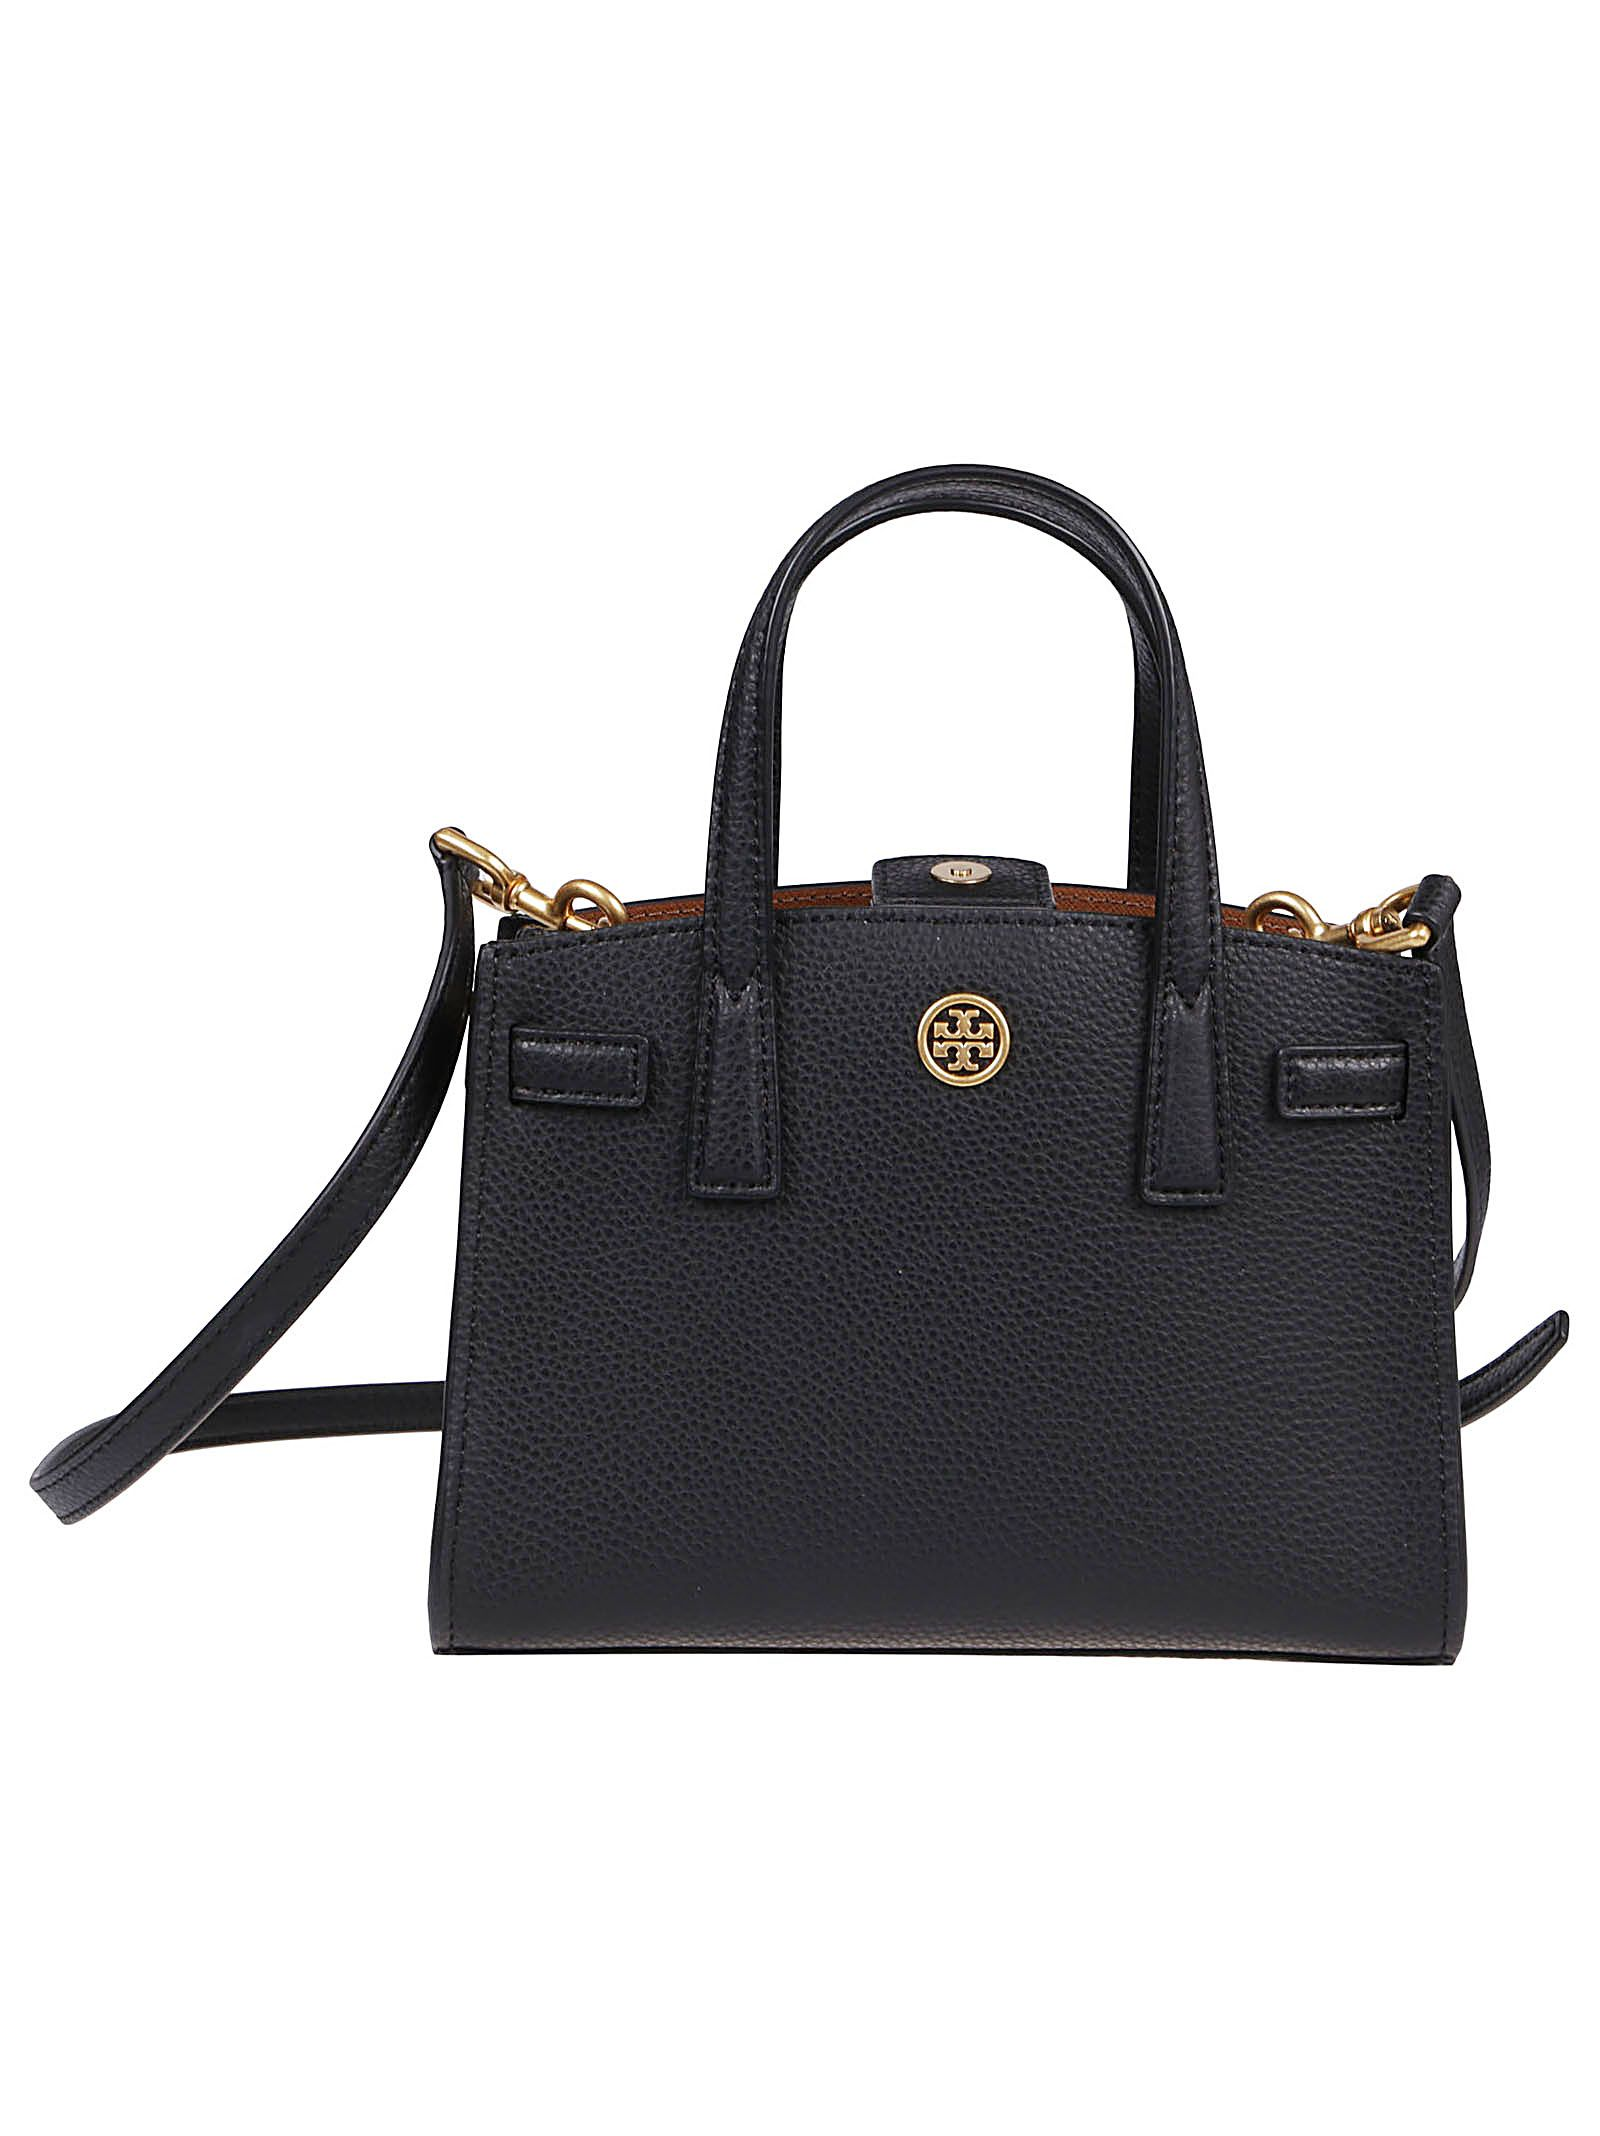 Tory Burch Leathers TORY BURCH WOMEN'S 79405001 BLACK OTHER MATERIALS TOTE